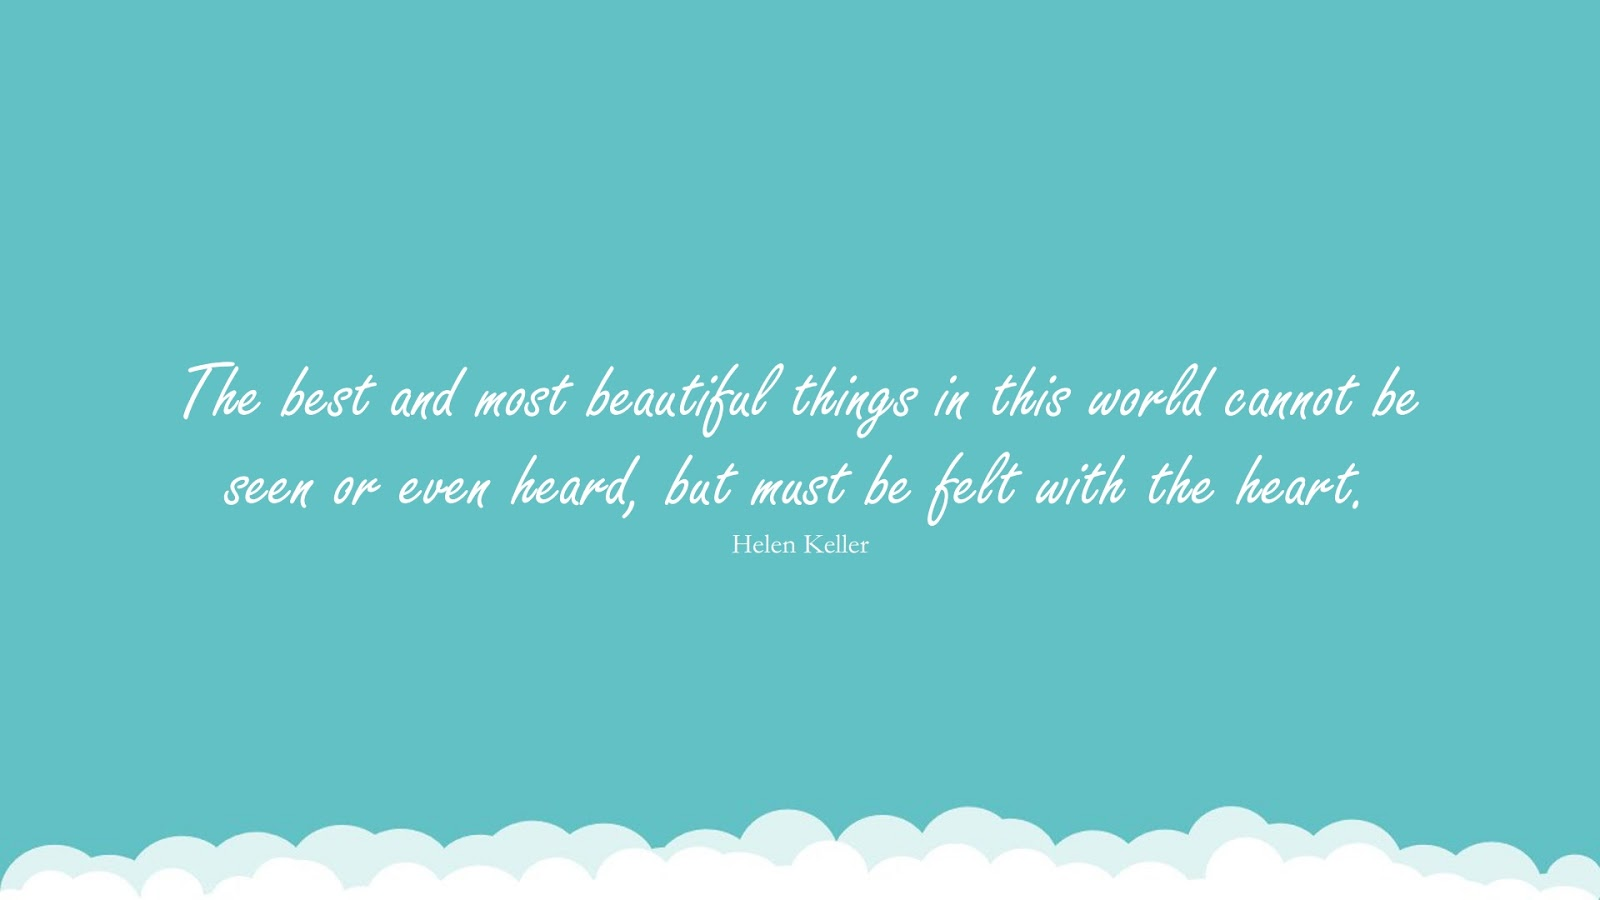 The best and most beautiful things in this world cannot be seen or even heard, but must be felt with the heart. (Helen Keller);  #LoveQuotes